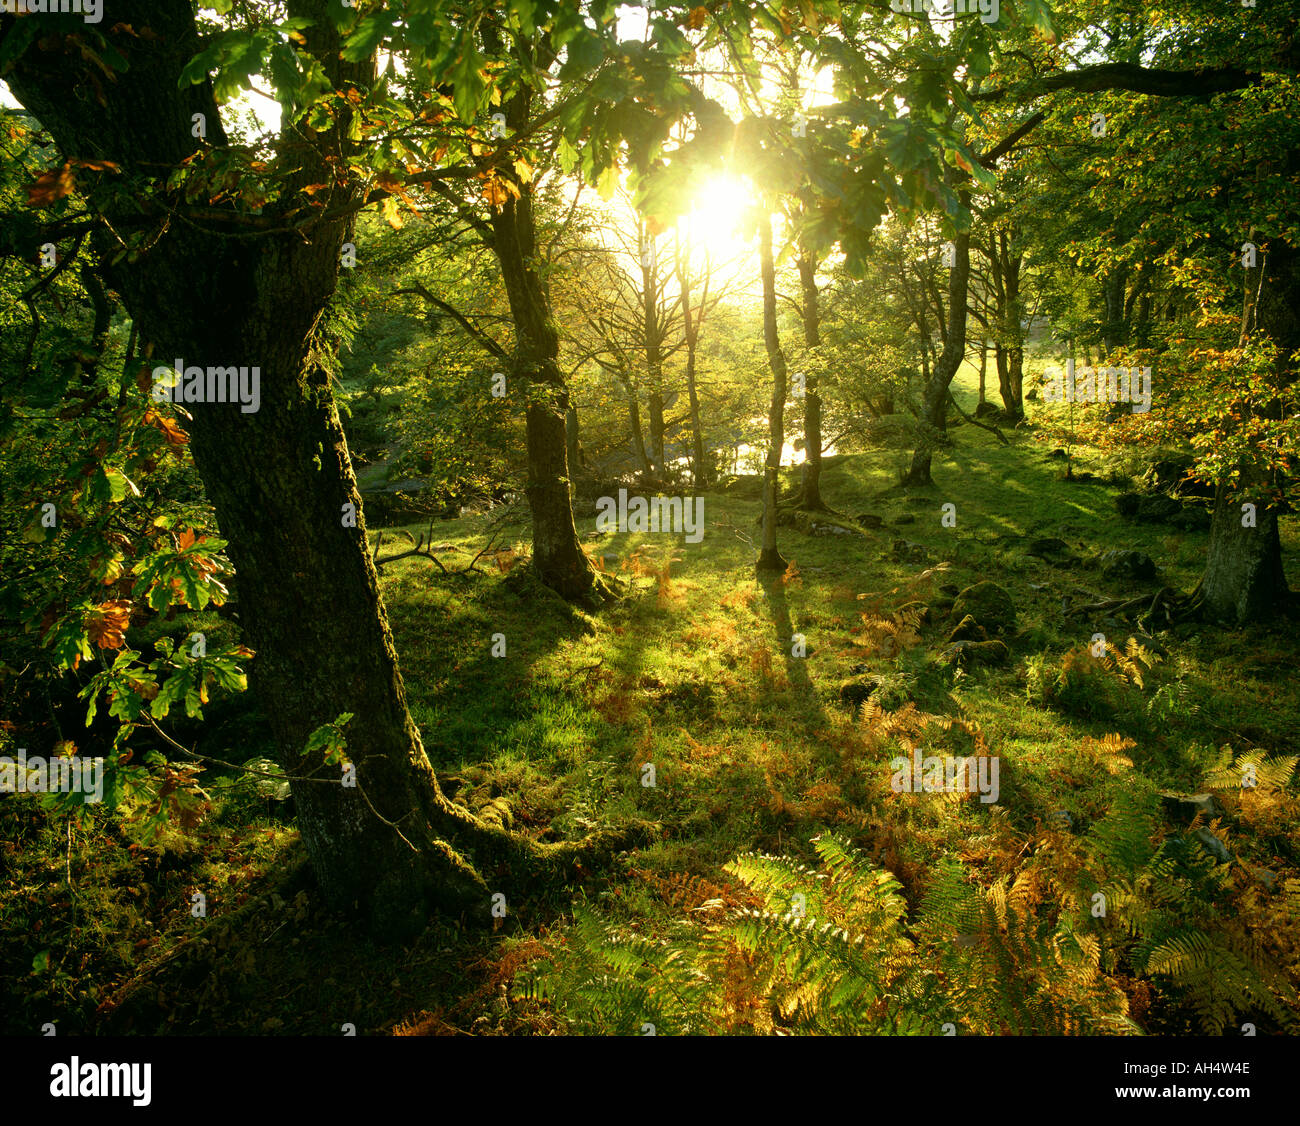 GB - WALES: Snowdonia National Forest - Stock Image